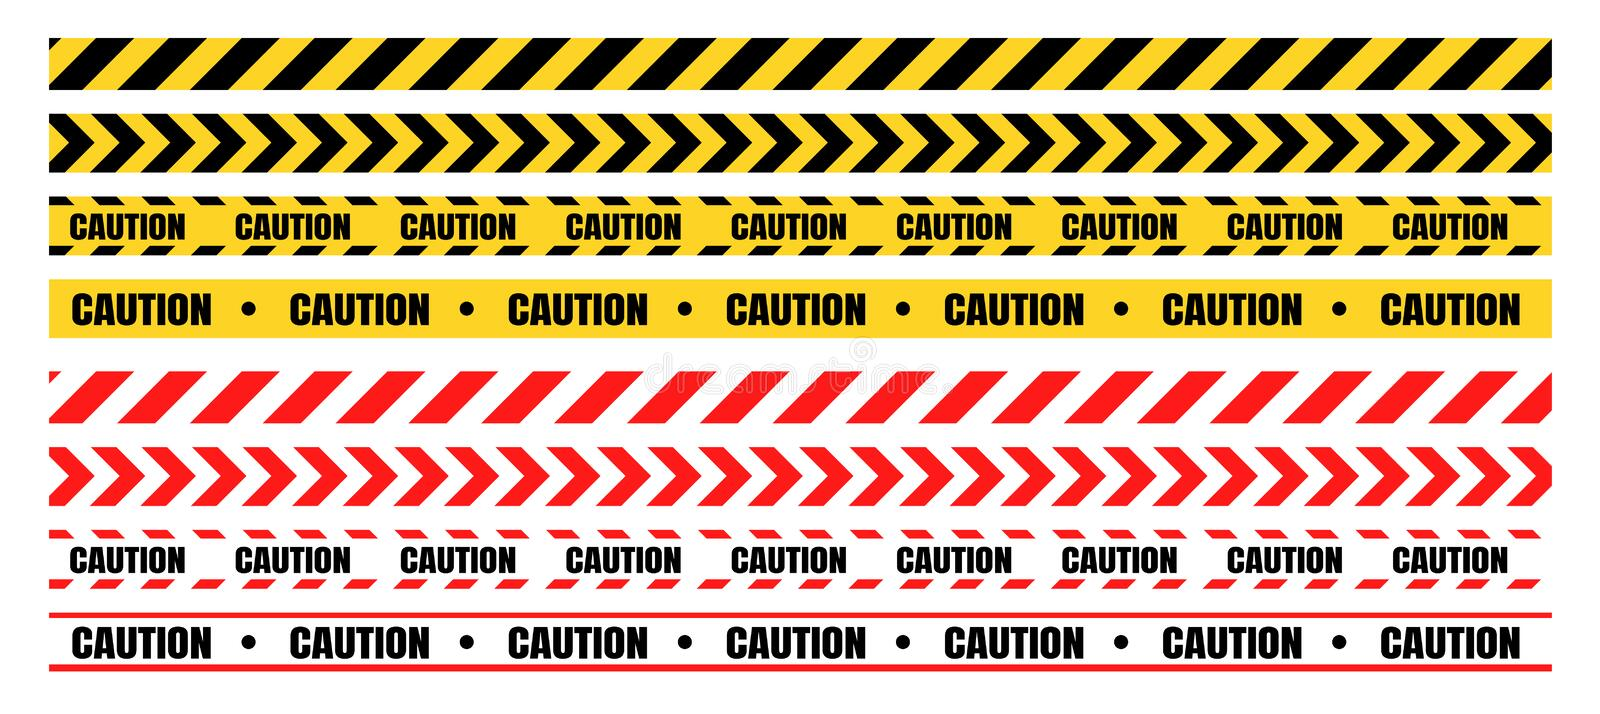 Hazardous warning tape sets must be careful for construction and crime.  royalty free illustration